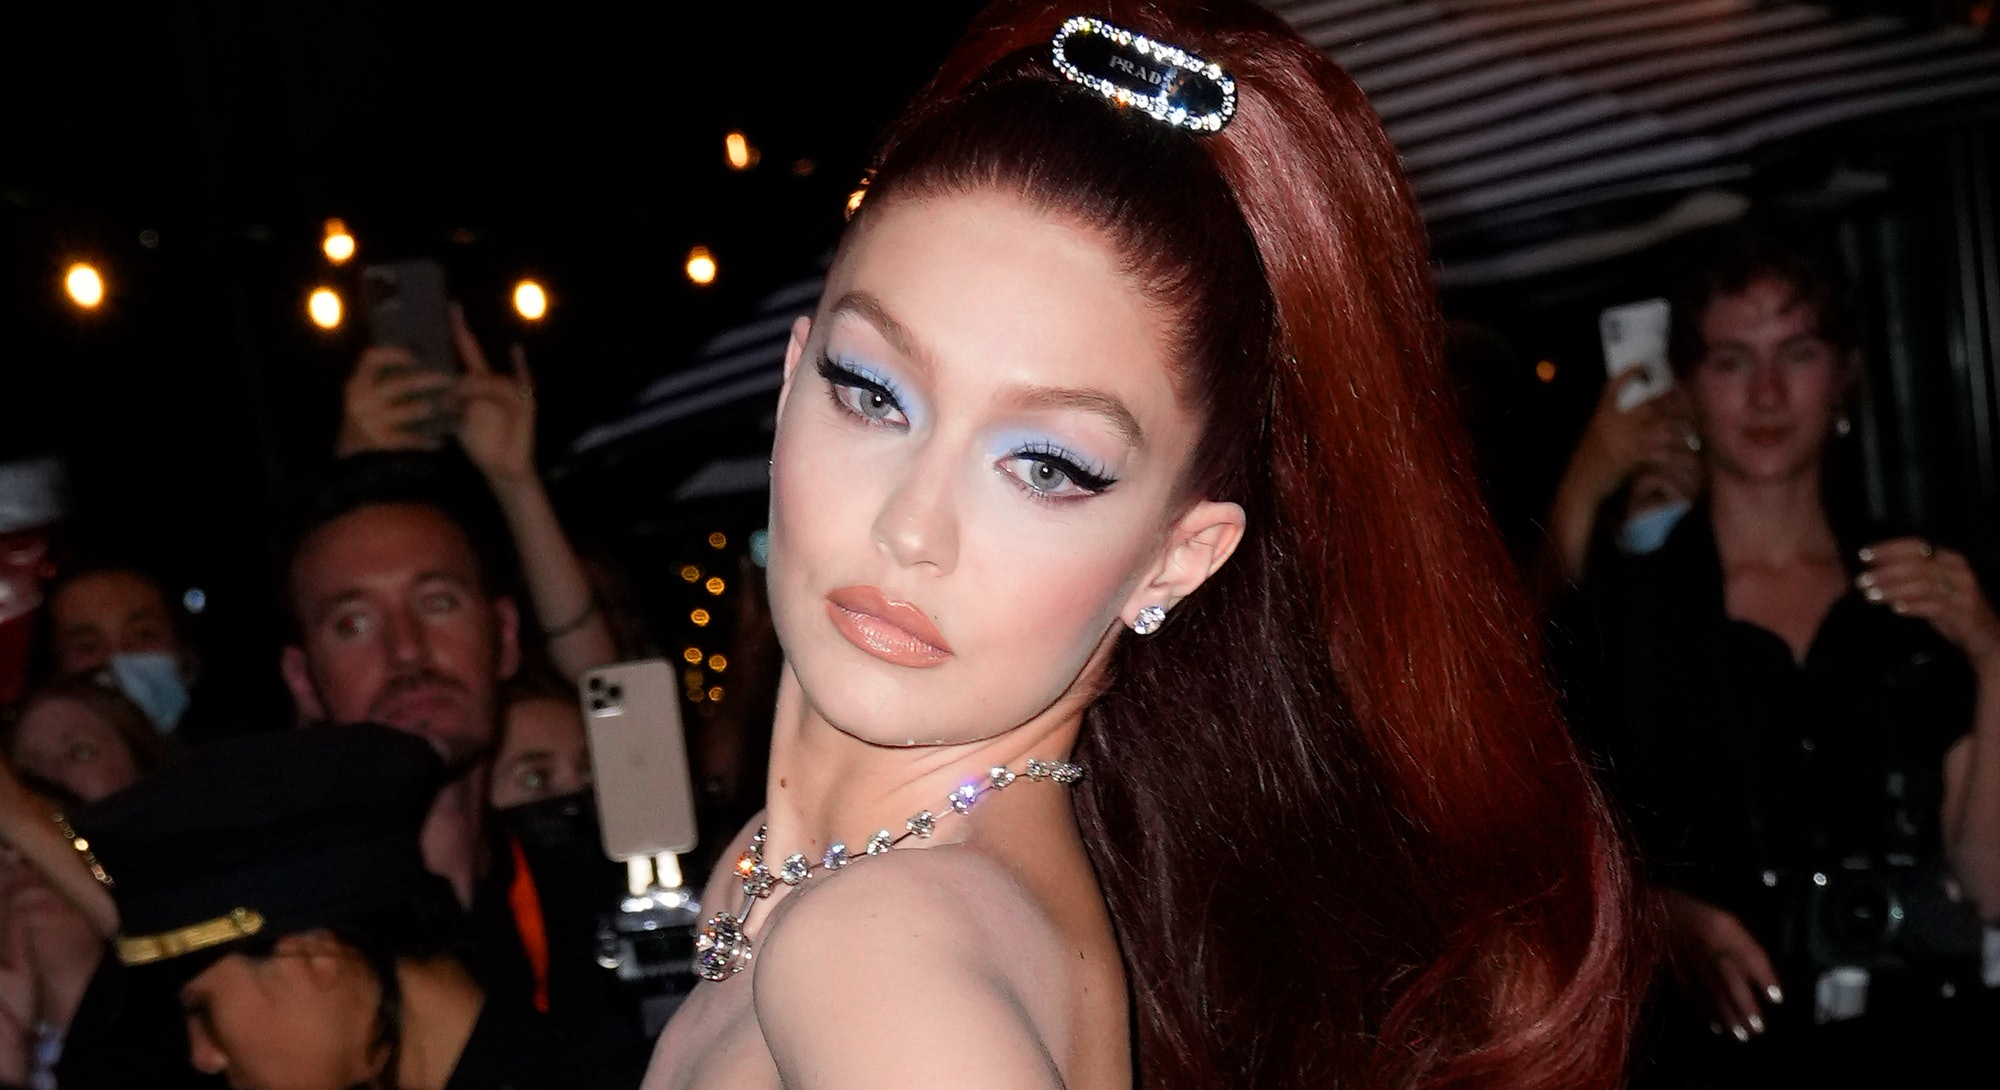 Gigi Hadid's Met Gala 2021 makeup was one of the best beauty looks of the night.